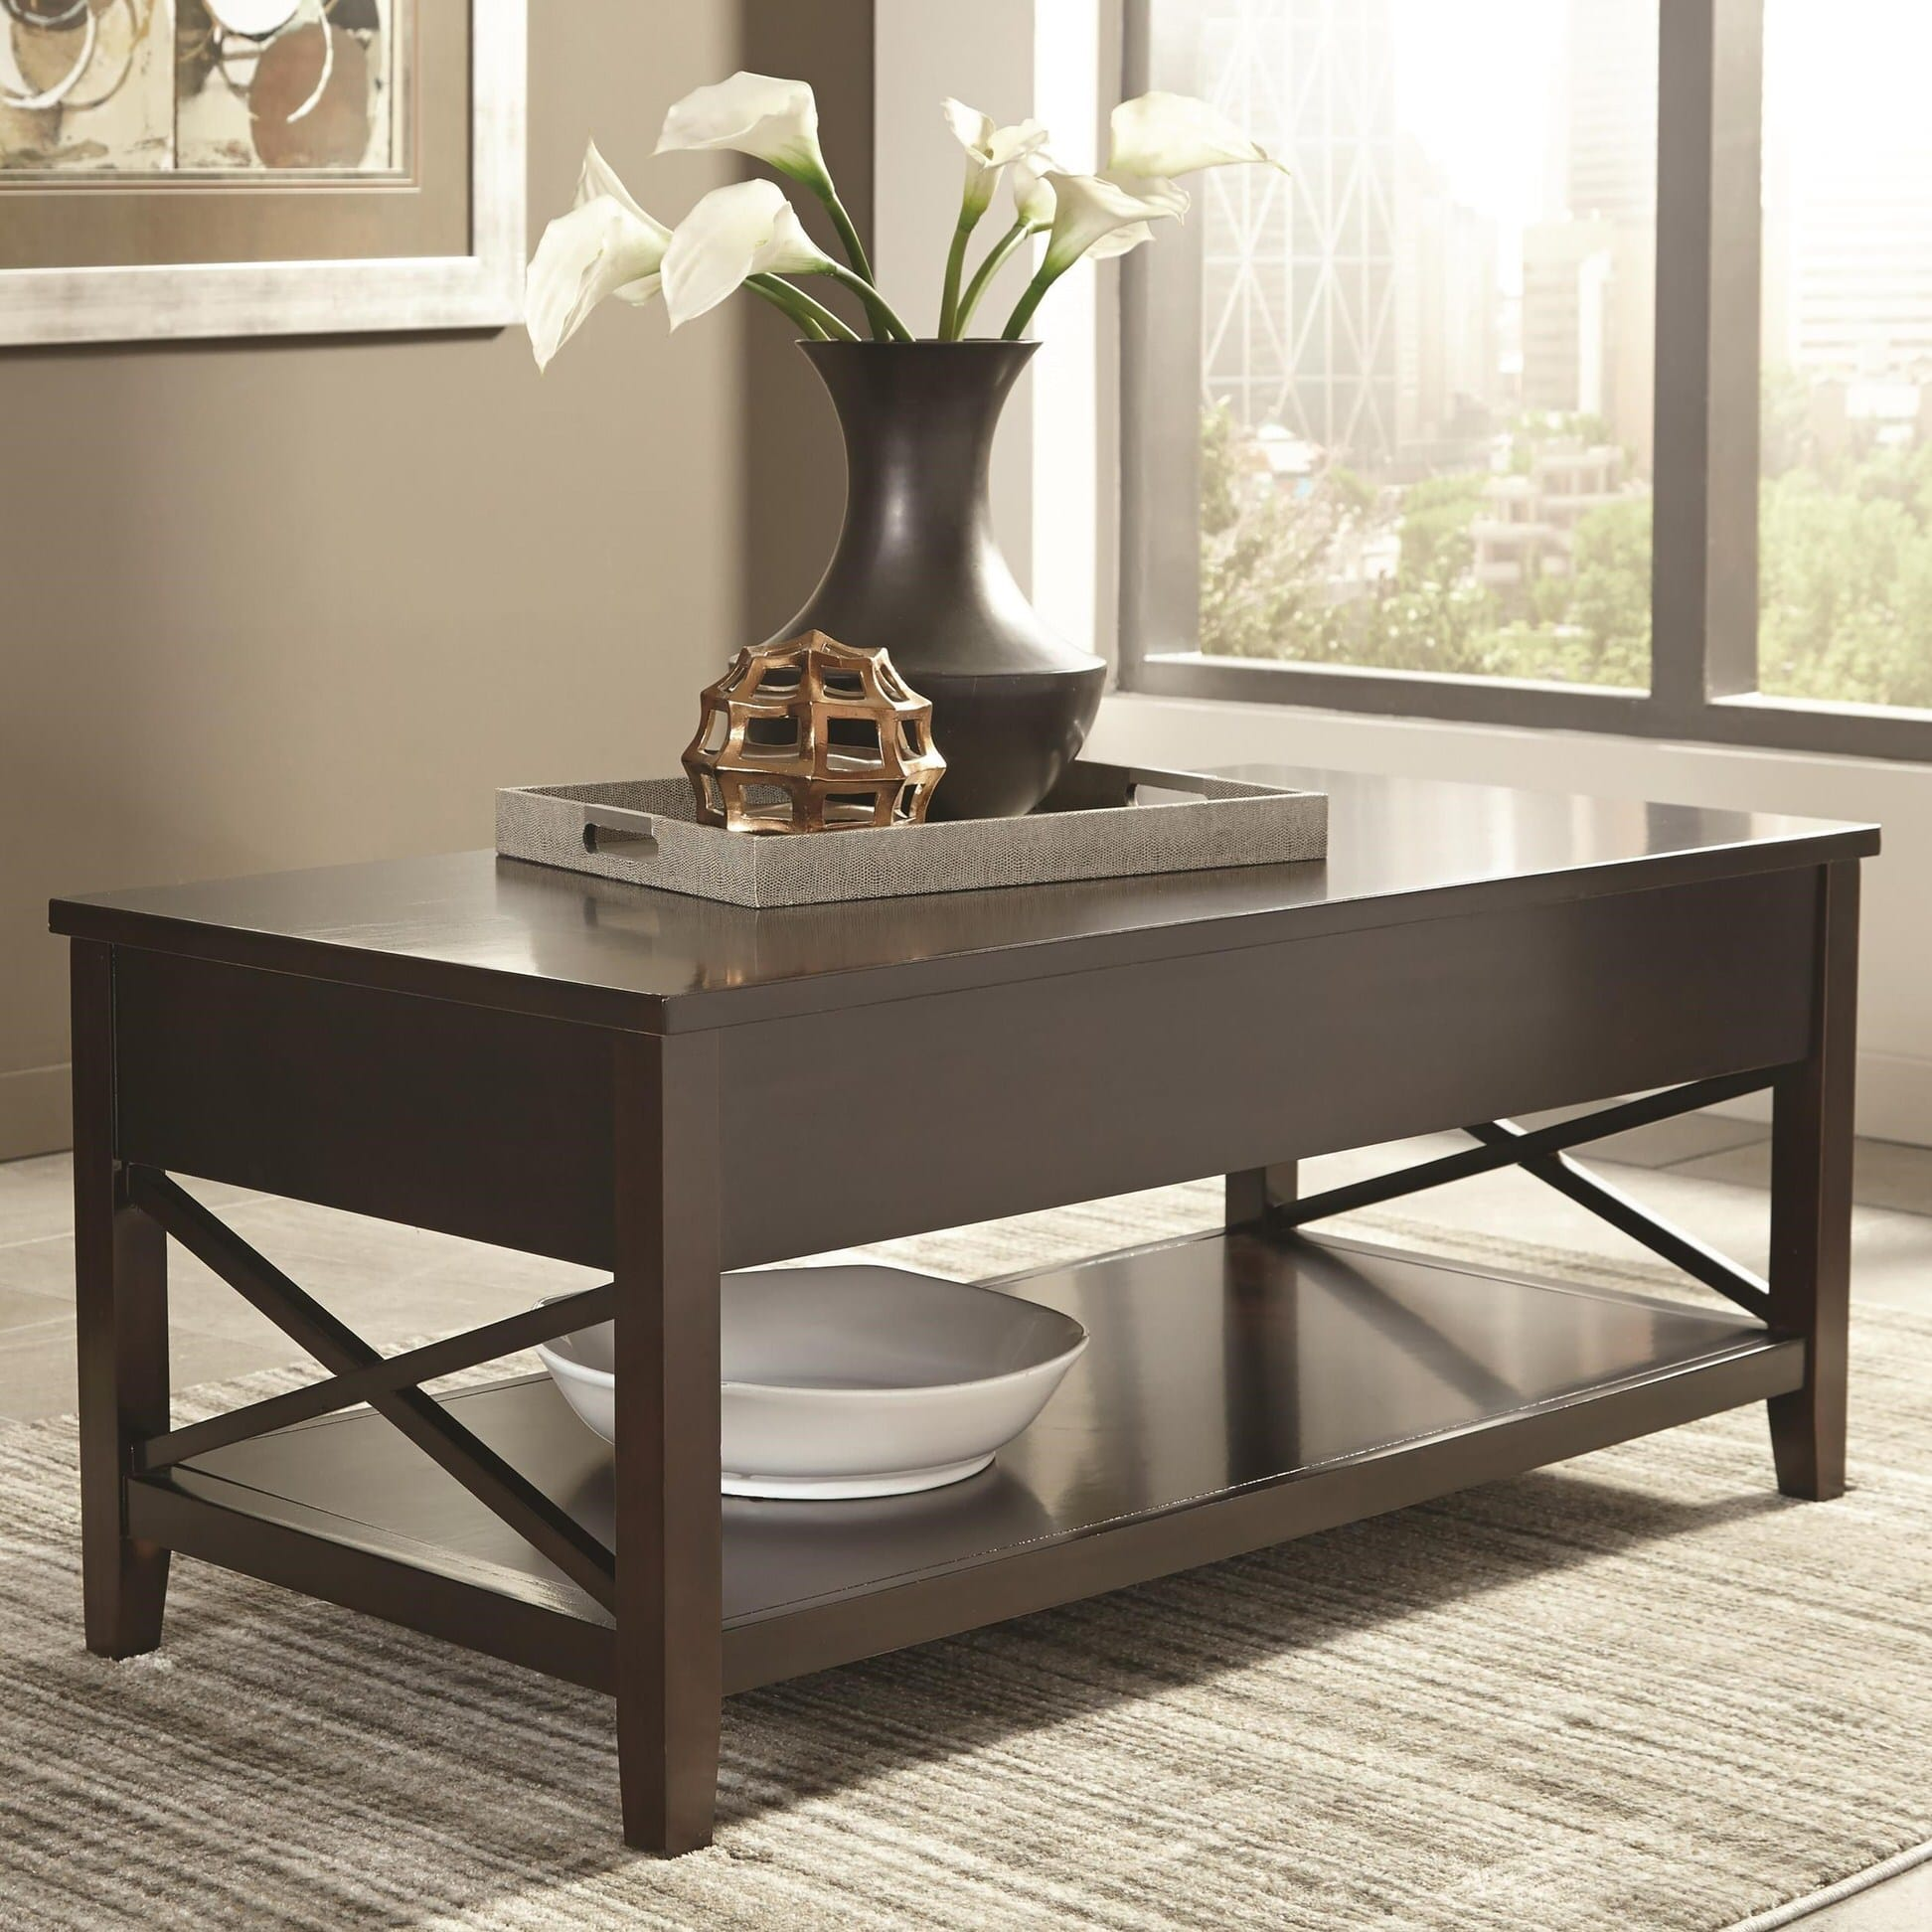 Expresso Coffee Table.705688 Transitional Espresso Coffee Table By Scott Living